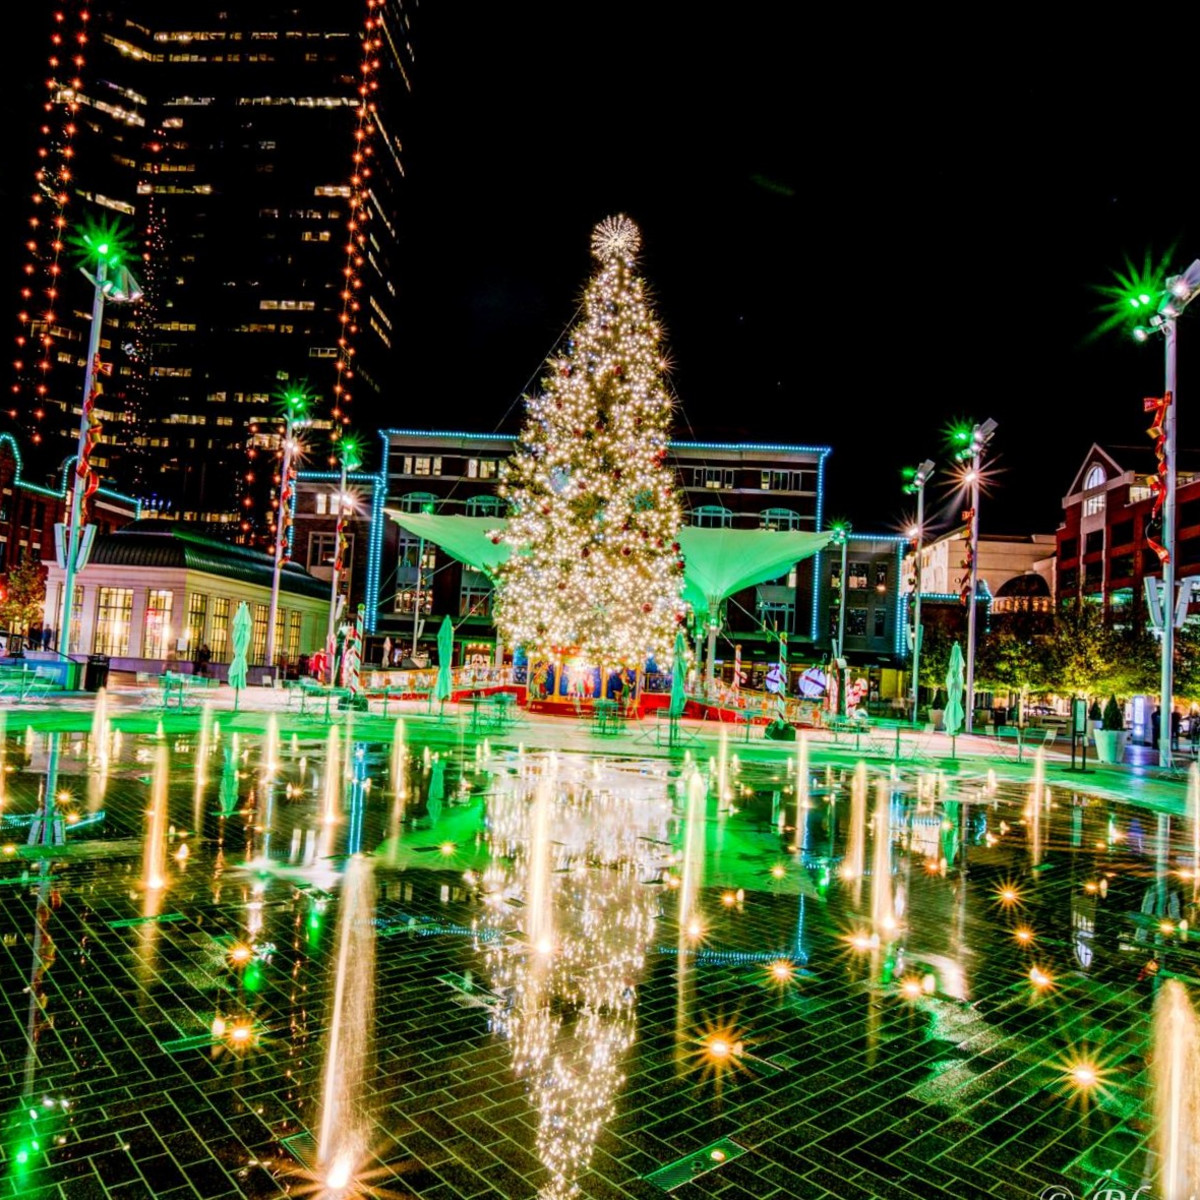 Best Holiday Decor Stores Near Dallas Fort Worth: The Best And Brightest Christmas Lights Around Fort Worth